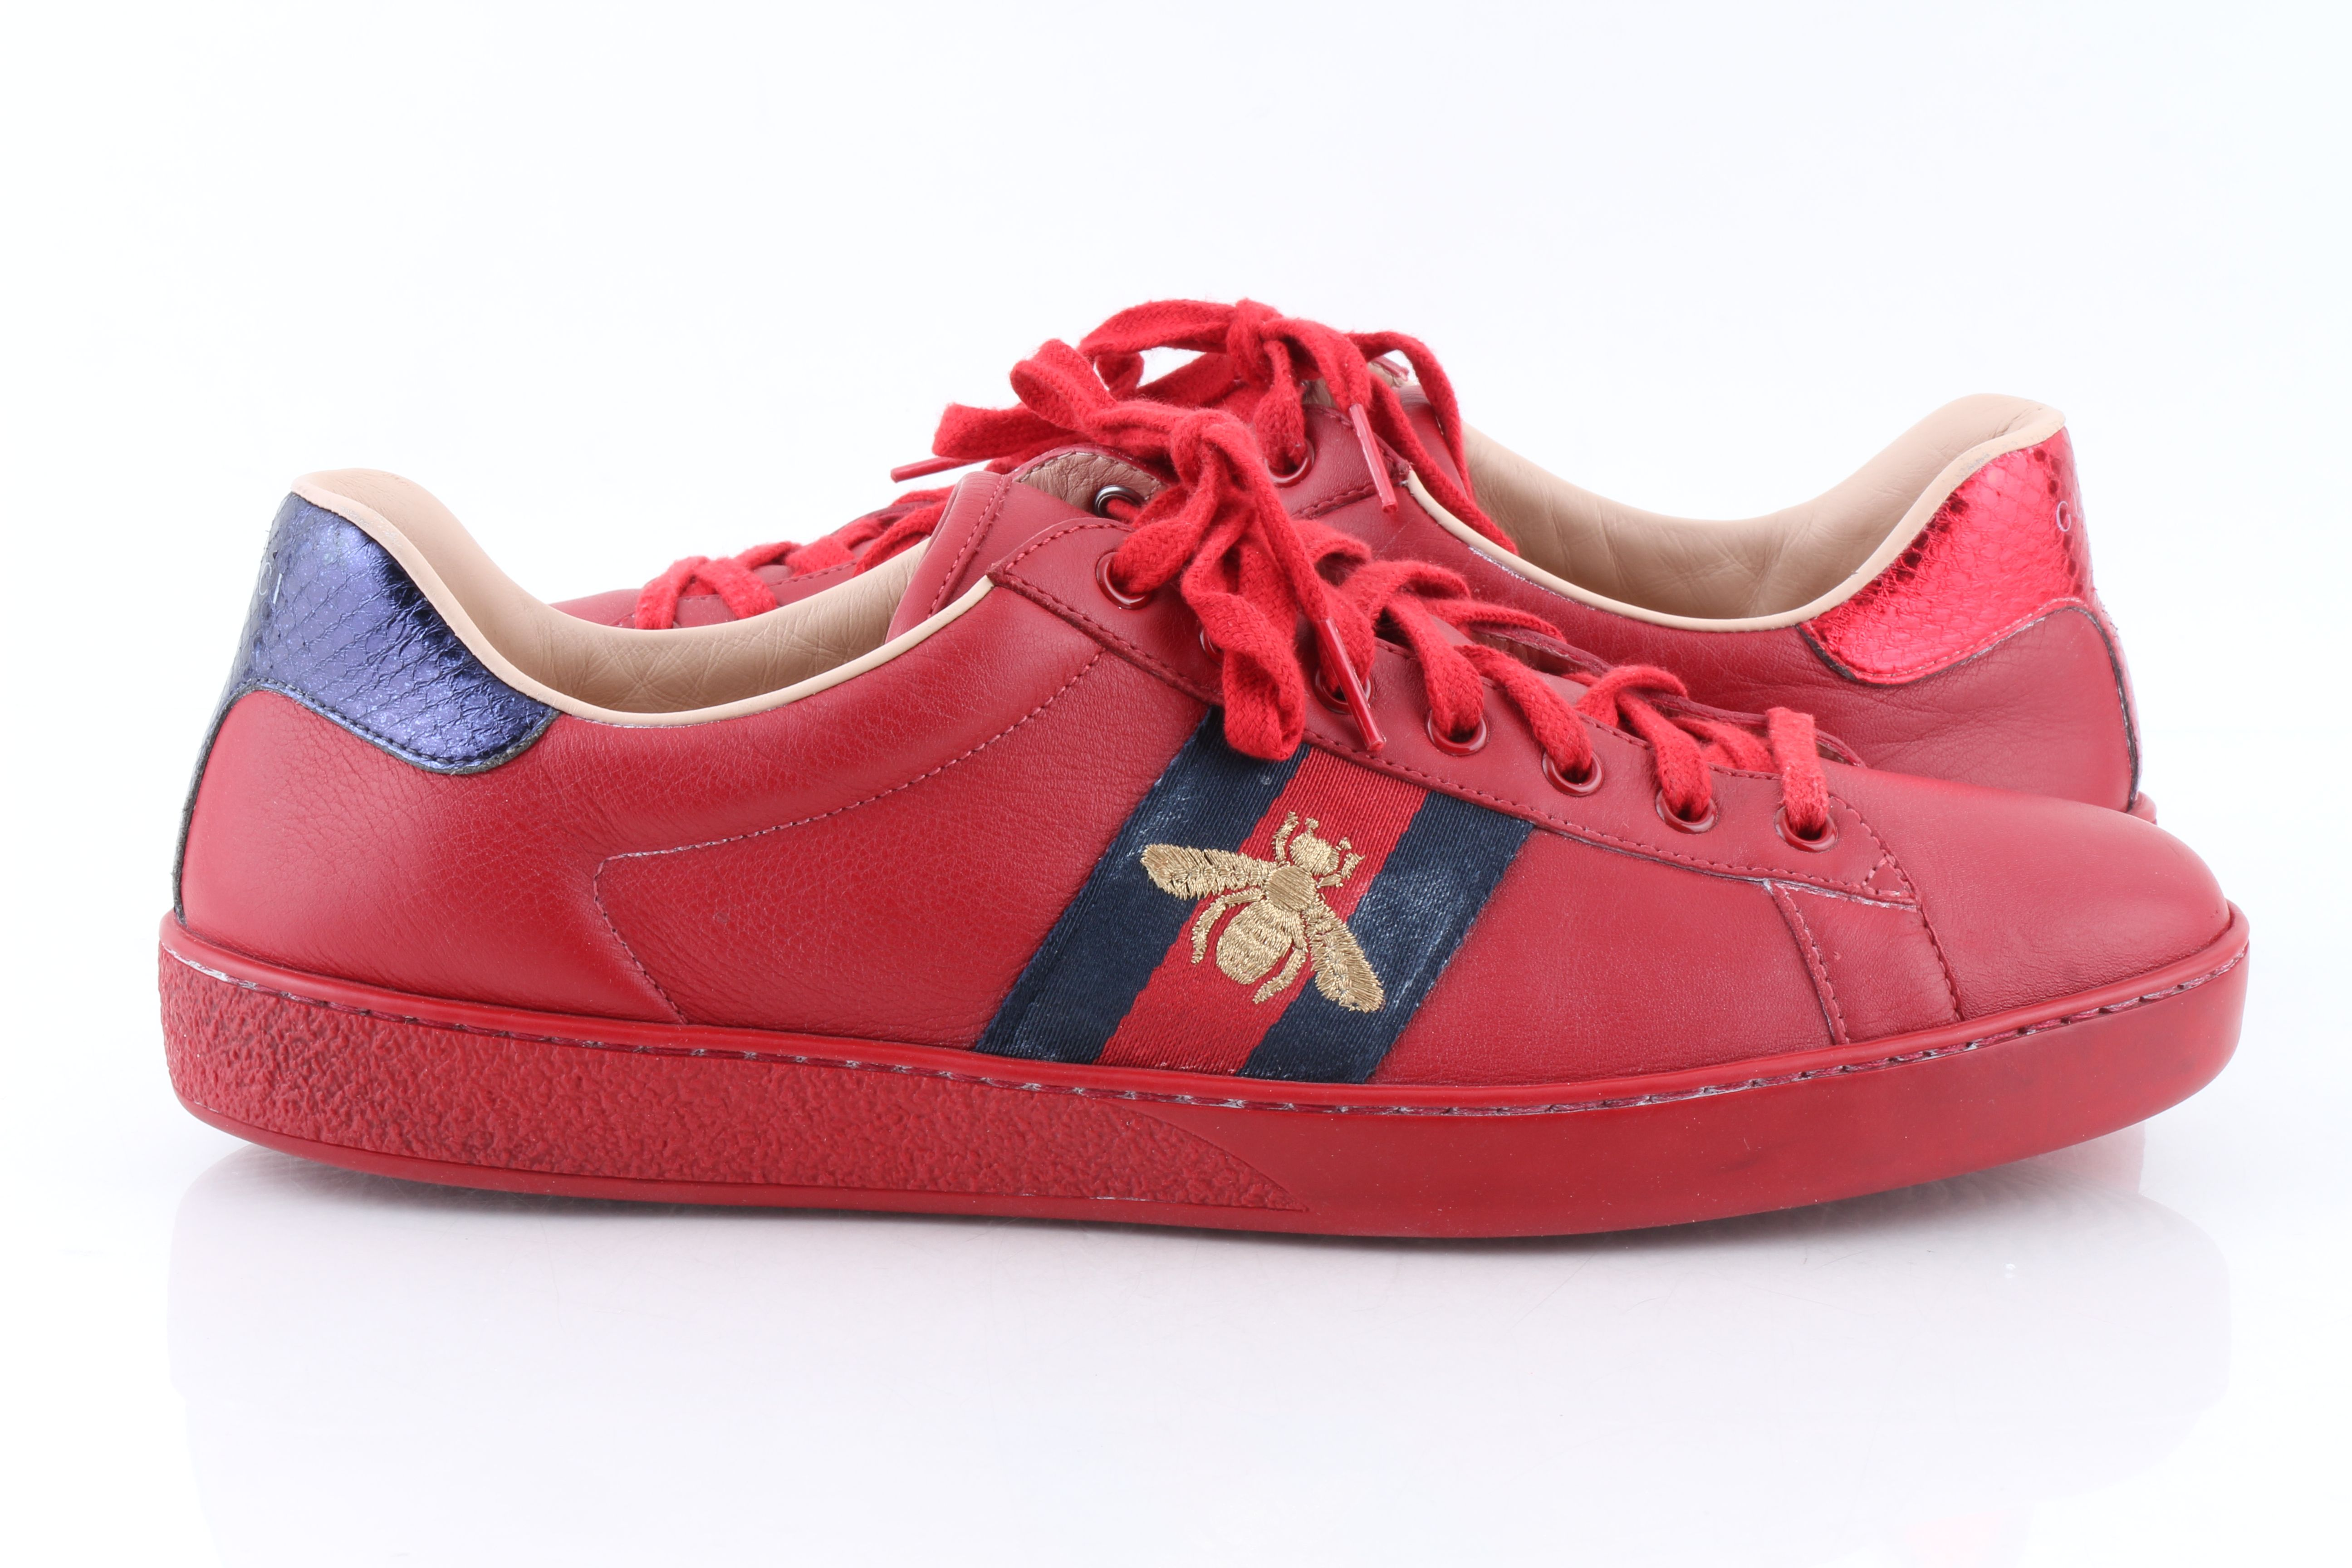 Gucci Men's New Red Ace Embroidered Low